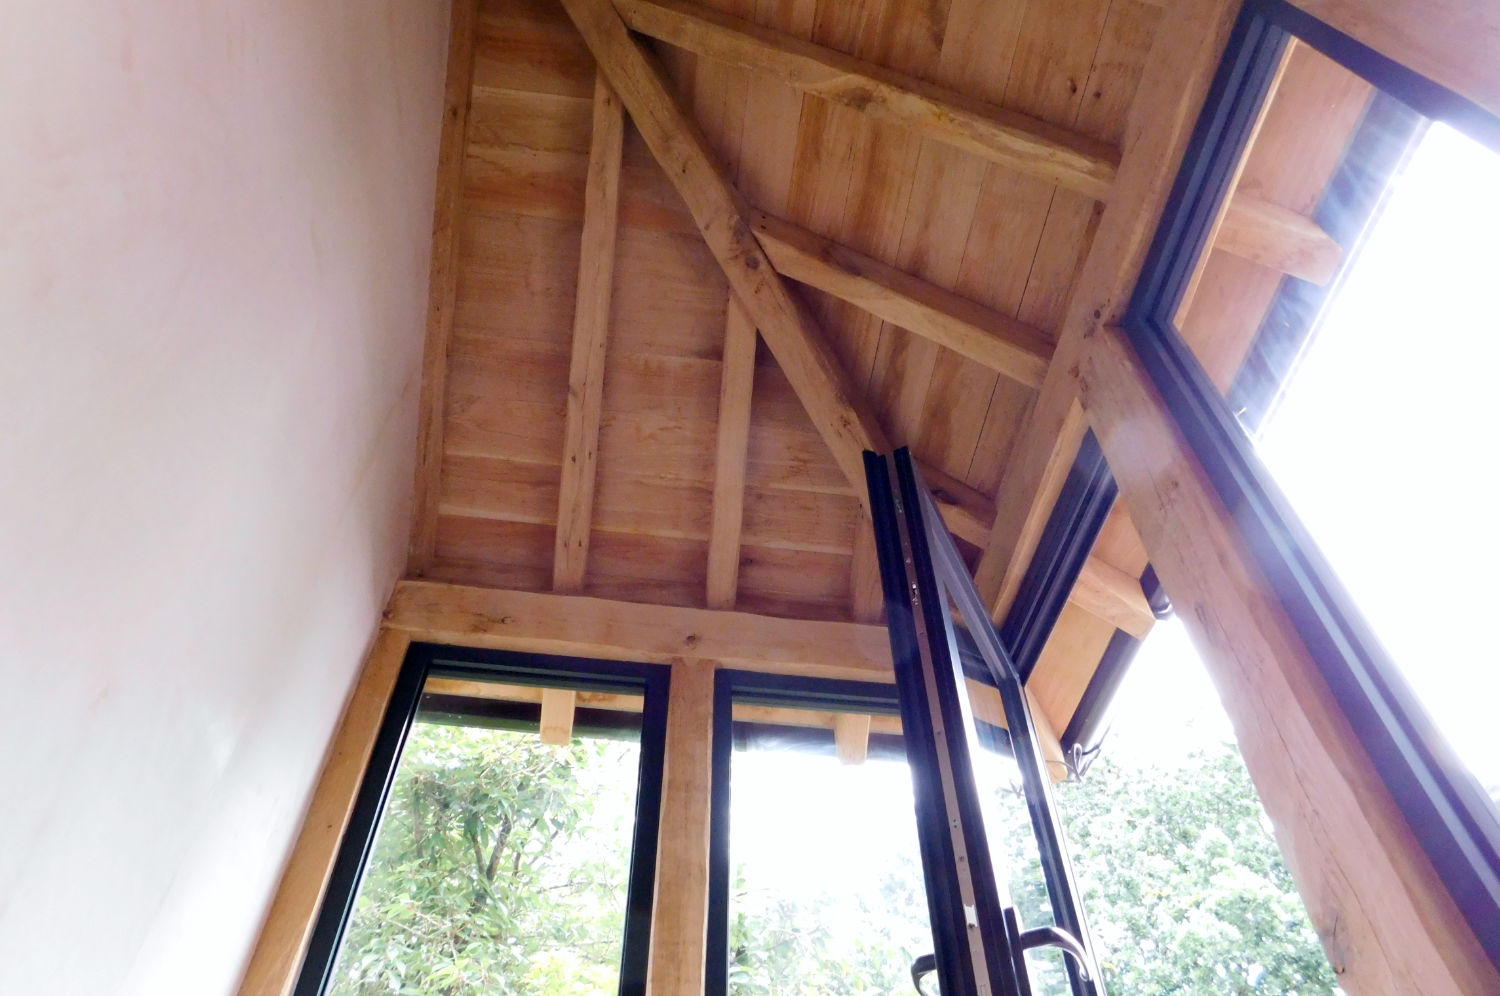 Enclosed Porch, oak frame, brick dwarf wall, hipped roof, aluminium windows, Leigh, Wigan, Oak Carpentry, Lancs, North West